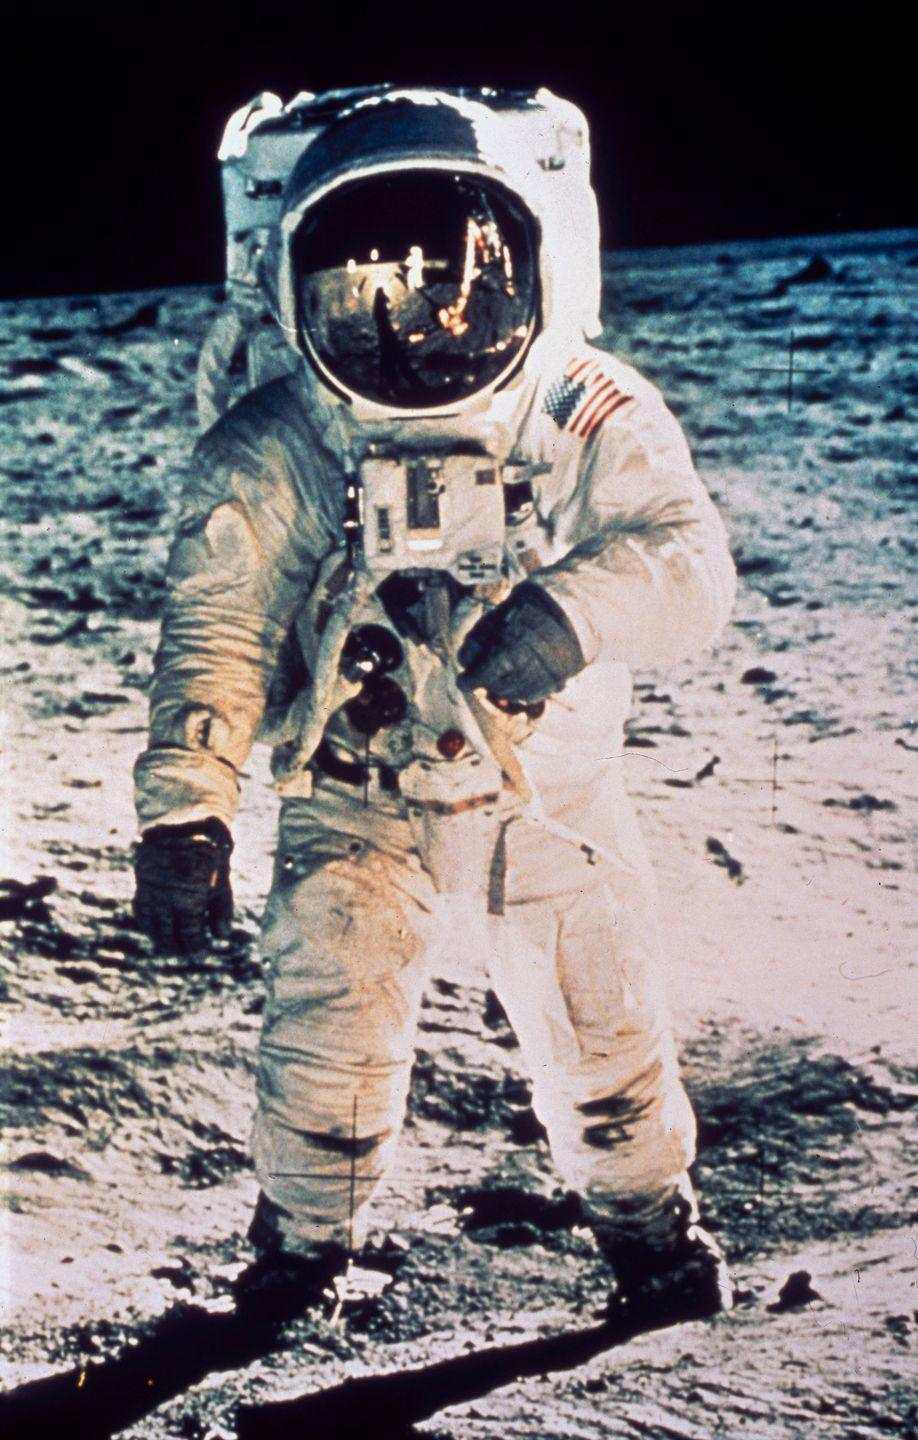 "<p>The <a href=""https://www.goodhousekeeping.com/life/entertainment/a34825/matt-damon-the-martian-fact-or-fiction/"" rel=""nofollow noopener"" target=""_blank"" data-ylk=""slk:astronaut"" class=""link rapid-noclick-resp"">astronaut</a> insists he actually stated, ""That's one small step for <em>a </em>man, one giant leap for mankind."" ""That's the only way the statement makes any sense,"" Armstrong told <a href=""https://books.google.com/books?id=rMS6JFuLgx4C&pg=PA494&lpg=PA494&dq=#v=onepage&q&f=false"" rel=""nofollow noopener"" target=""_blank"" data-ylk=""slk:biographer James Hansen"" class=""link rapid-noclick-resp"">biographer James Hansen</a>. And for the record, no real astronaut ever uttered ""Houston, we have a problem"" — Tom Hanks only said that in the movie <em><a href=""https://www.amazon.com/Apollo-13-Tom-Hanks/dp/B001JI5DRC/"" rel=""nofollow noopener"" target=""_blank"" data-ylk=""slk:Apollo 13"" class=""link rapid-noclick-resp"">Apollo 13</a>. </em><br></p>"